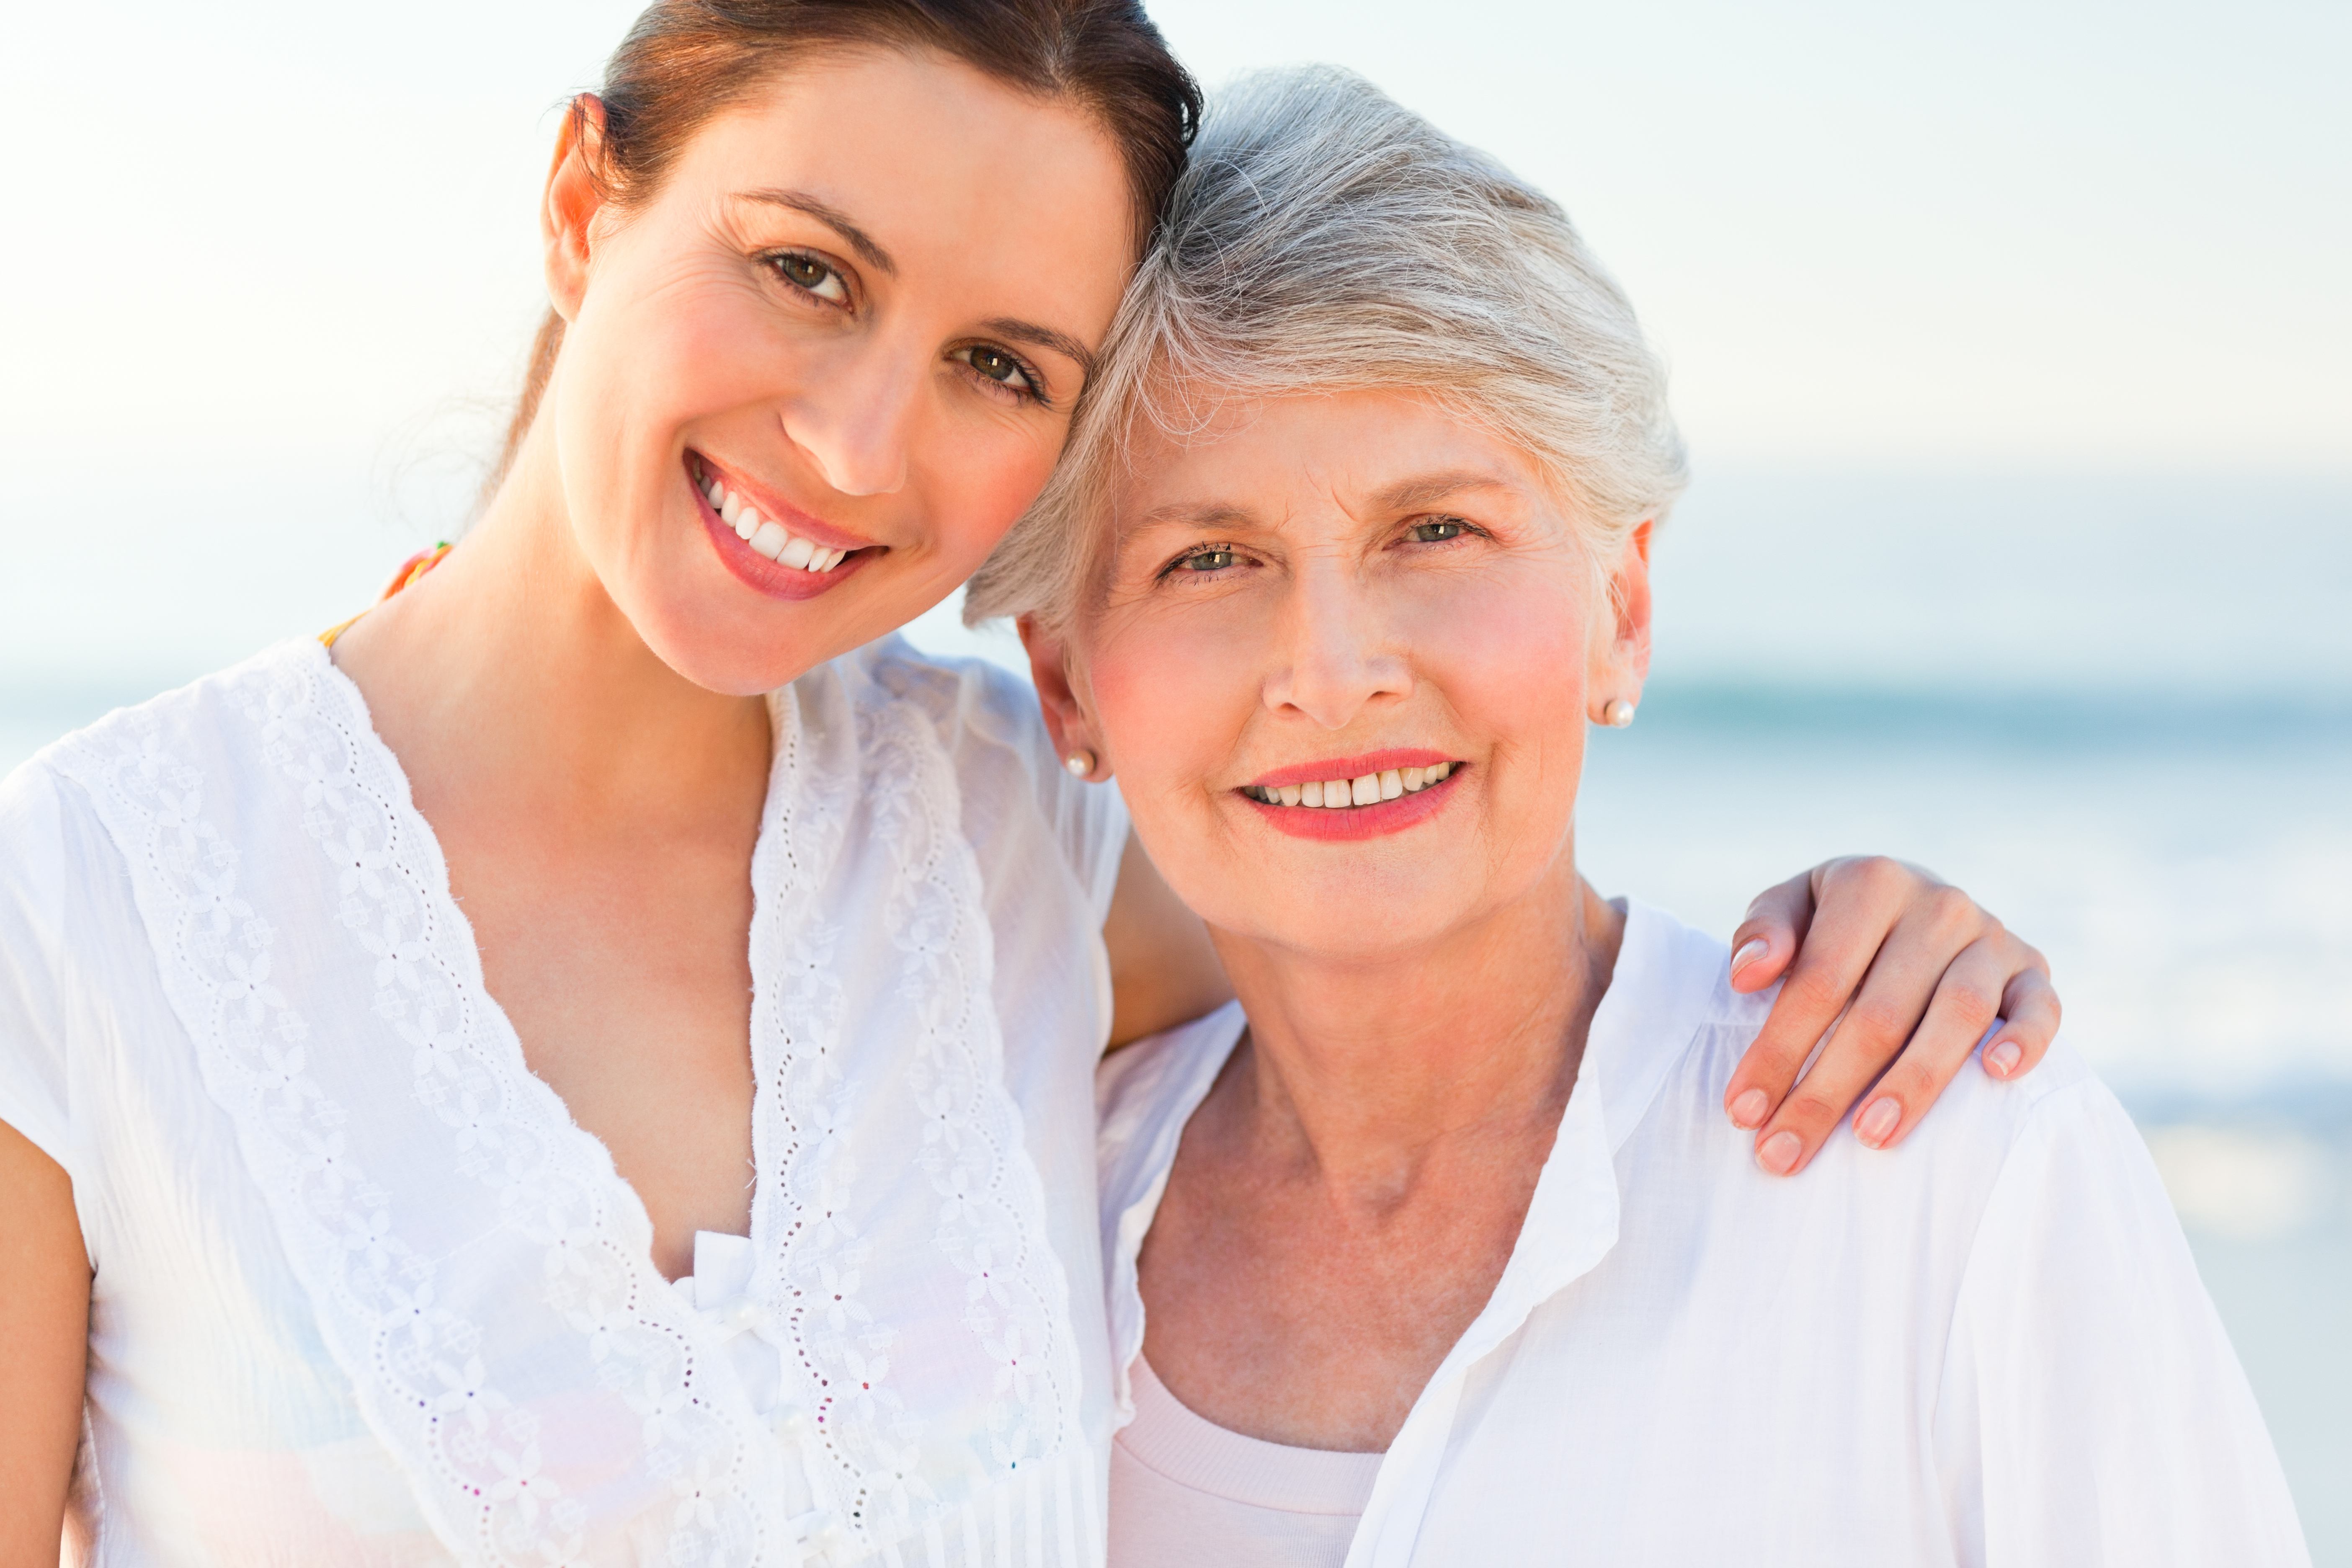 Benefits for looking after elderly parent